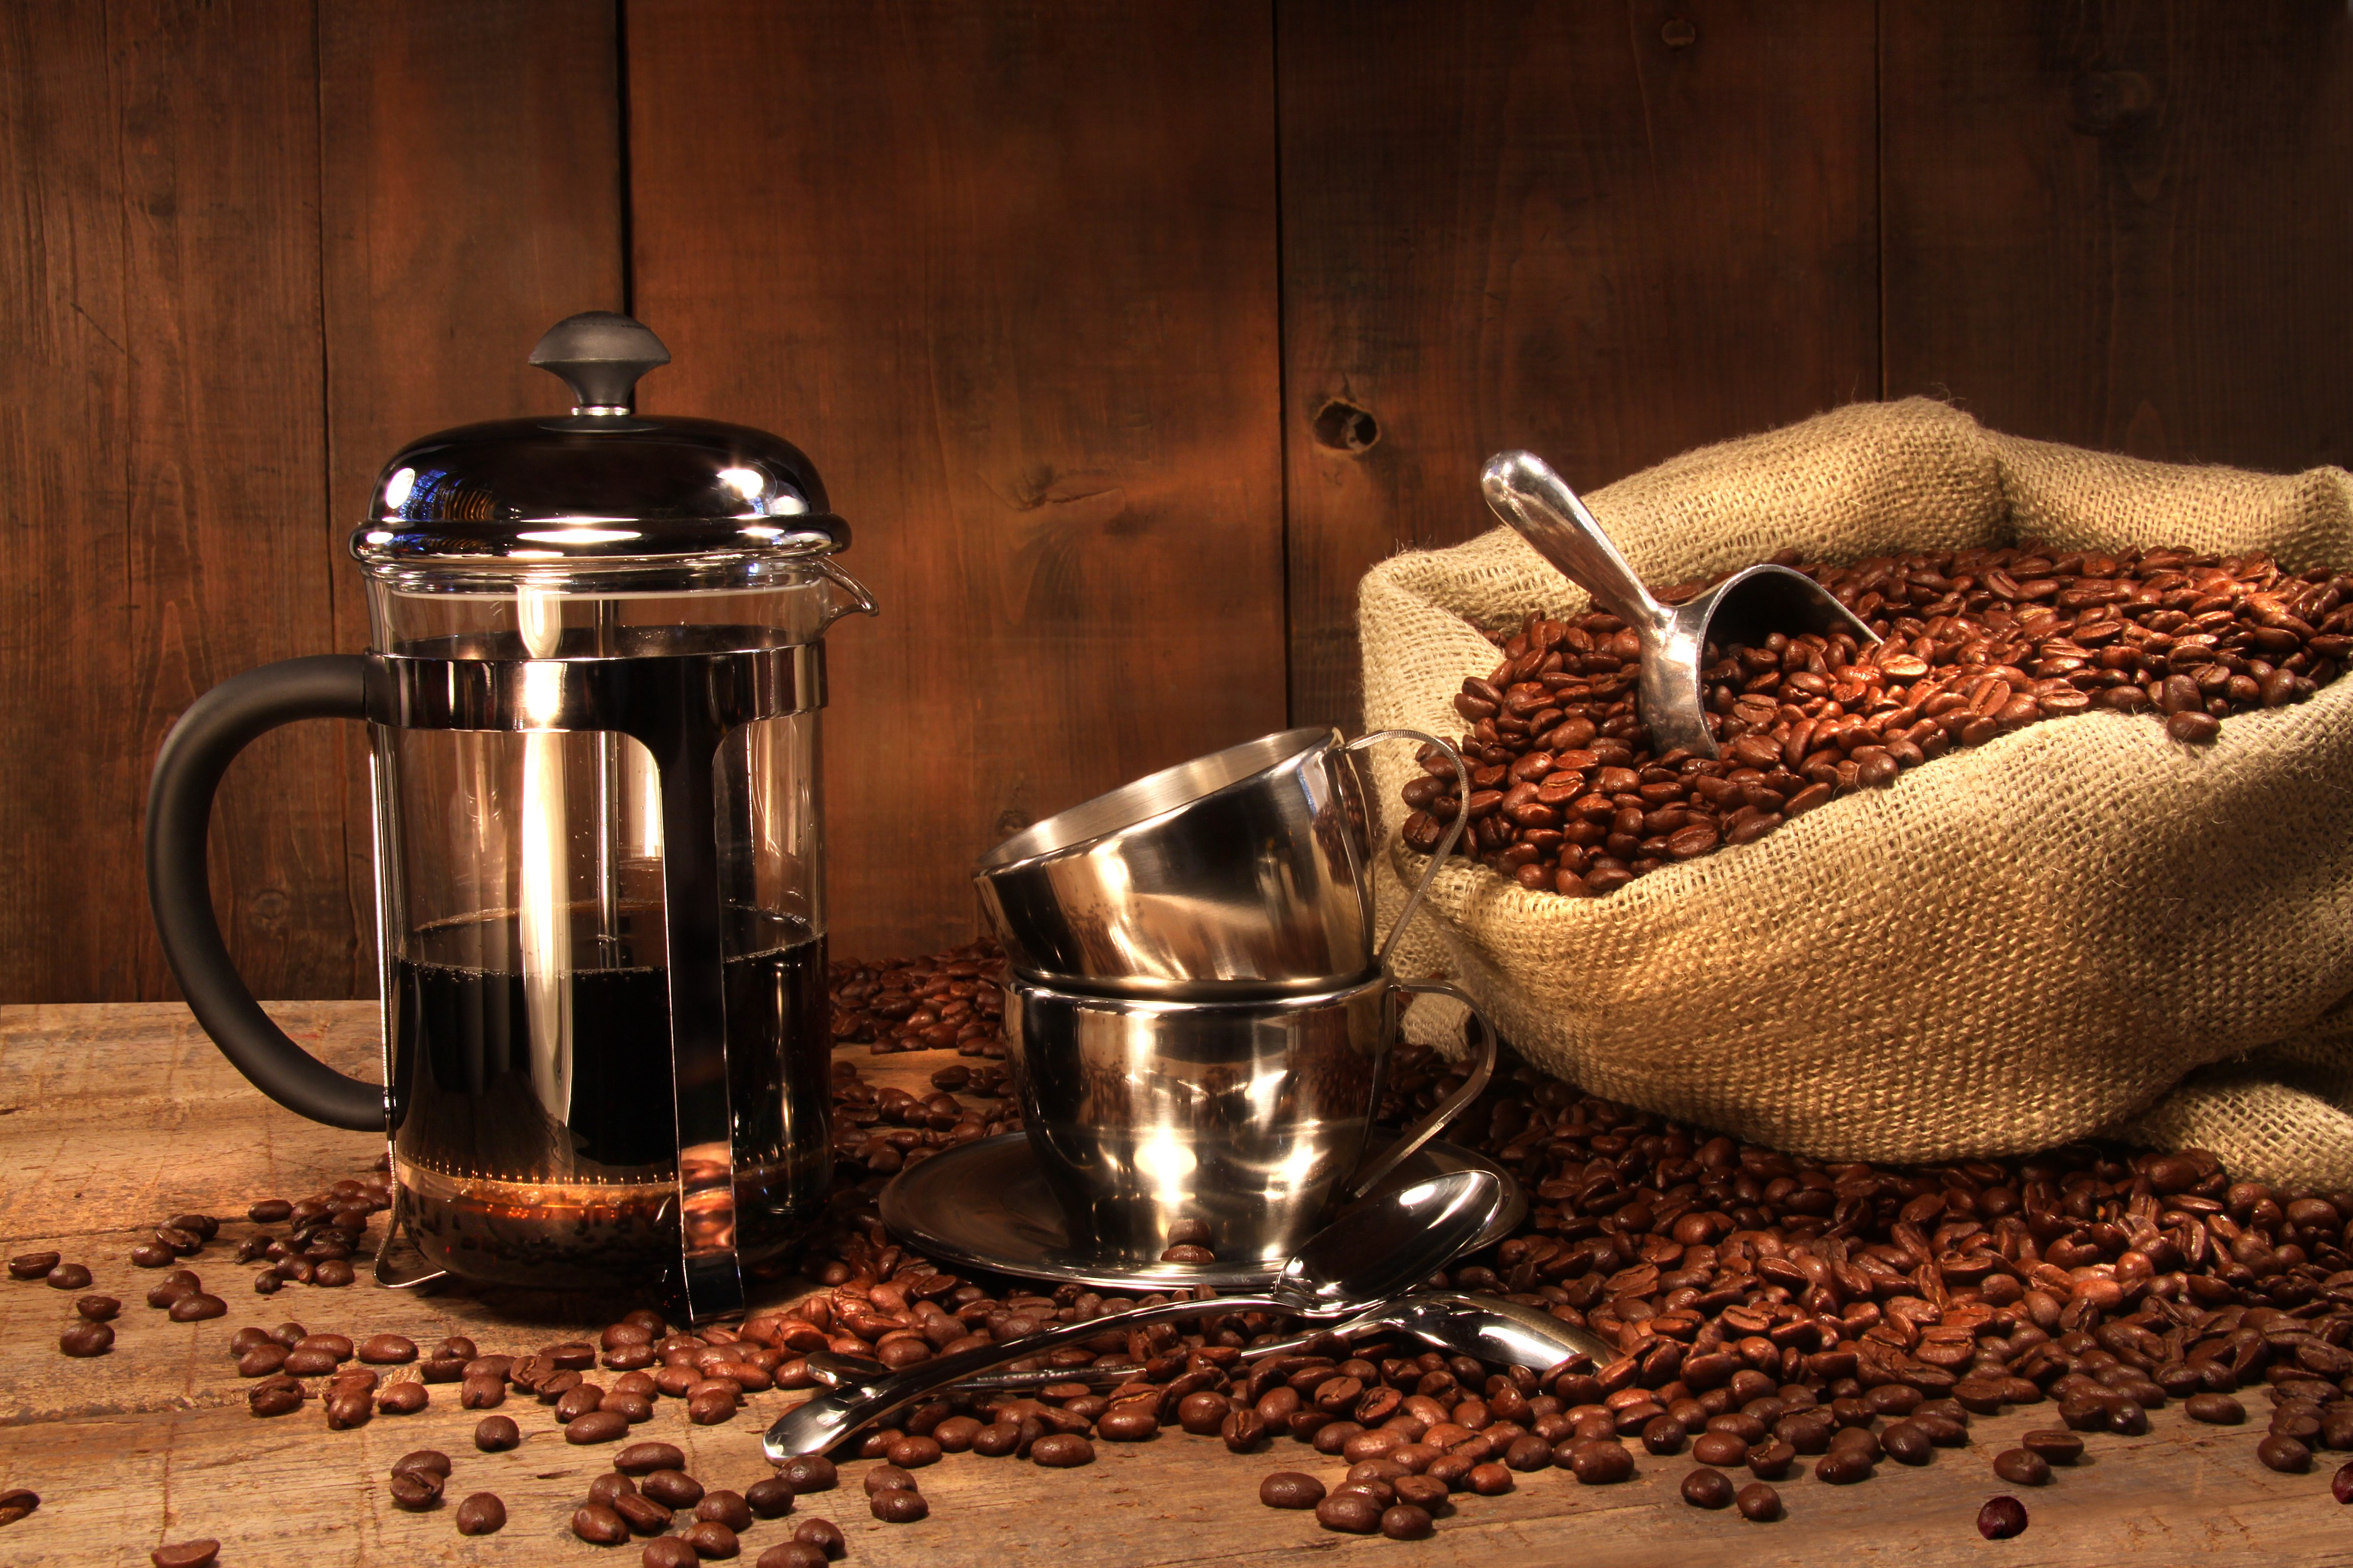 Why I Spend 10 Minutes Every Day Making Coffee in A French Press   by Zak  Slayback   Mission.org   Medium